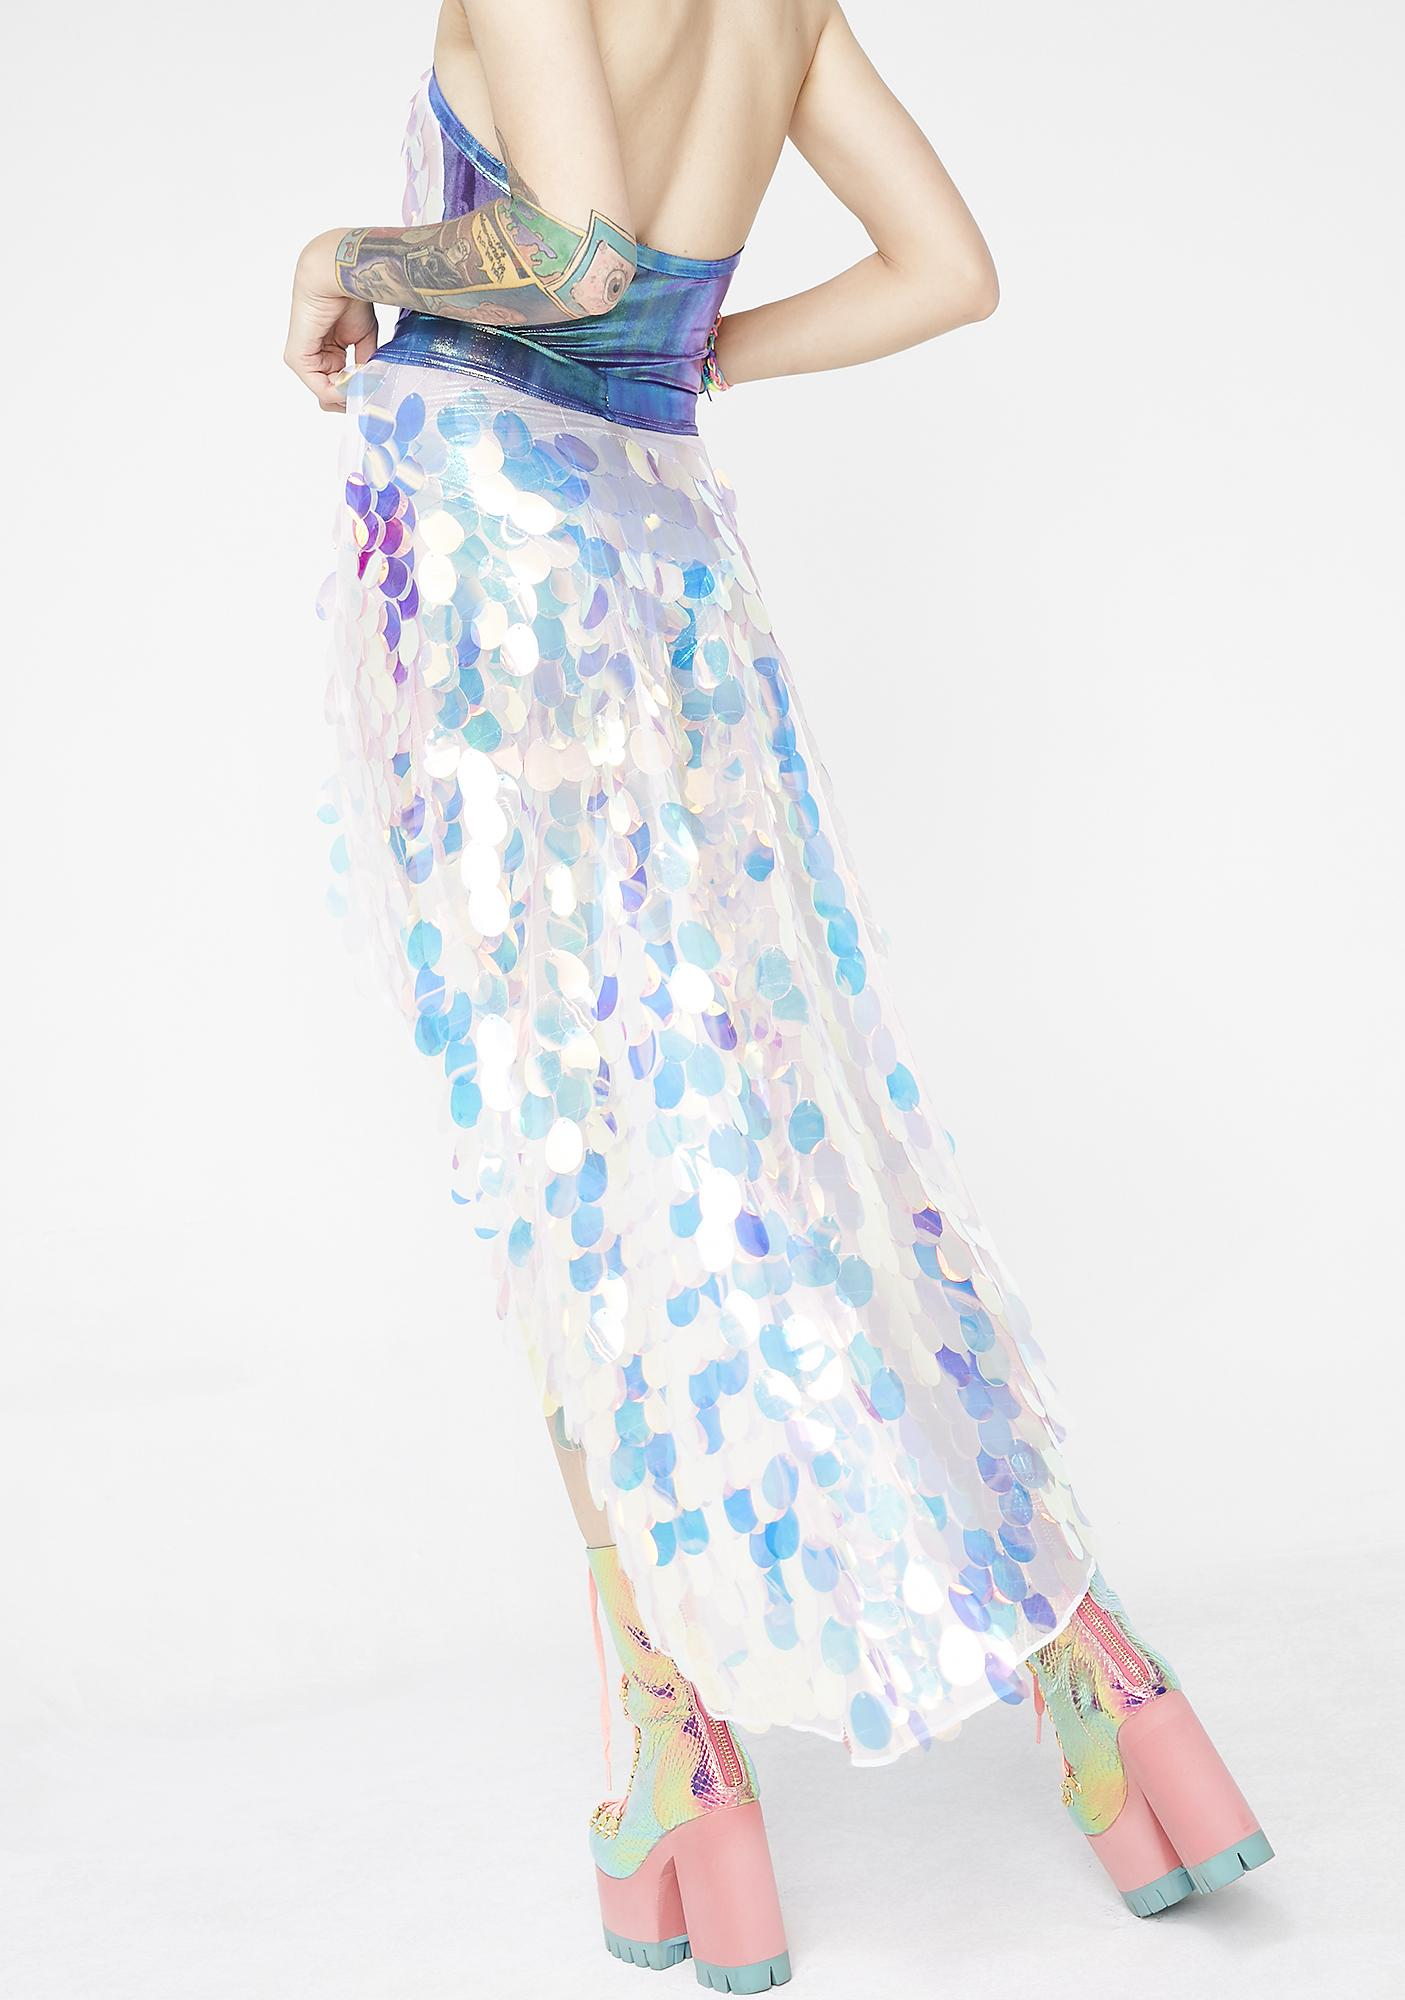 Rolita Rave Couture Fantasy Skirt